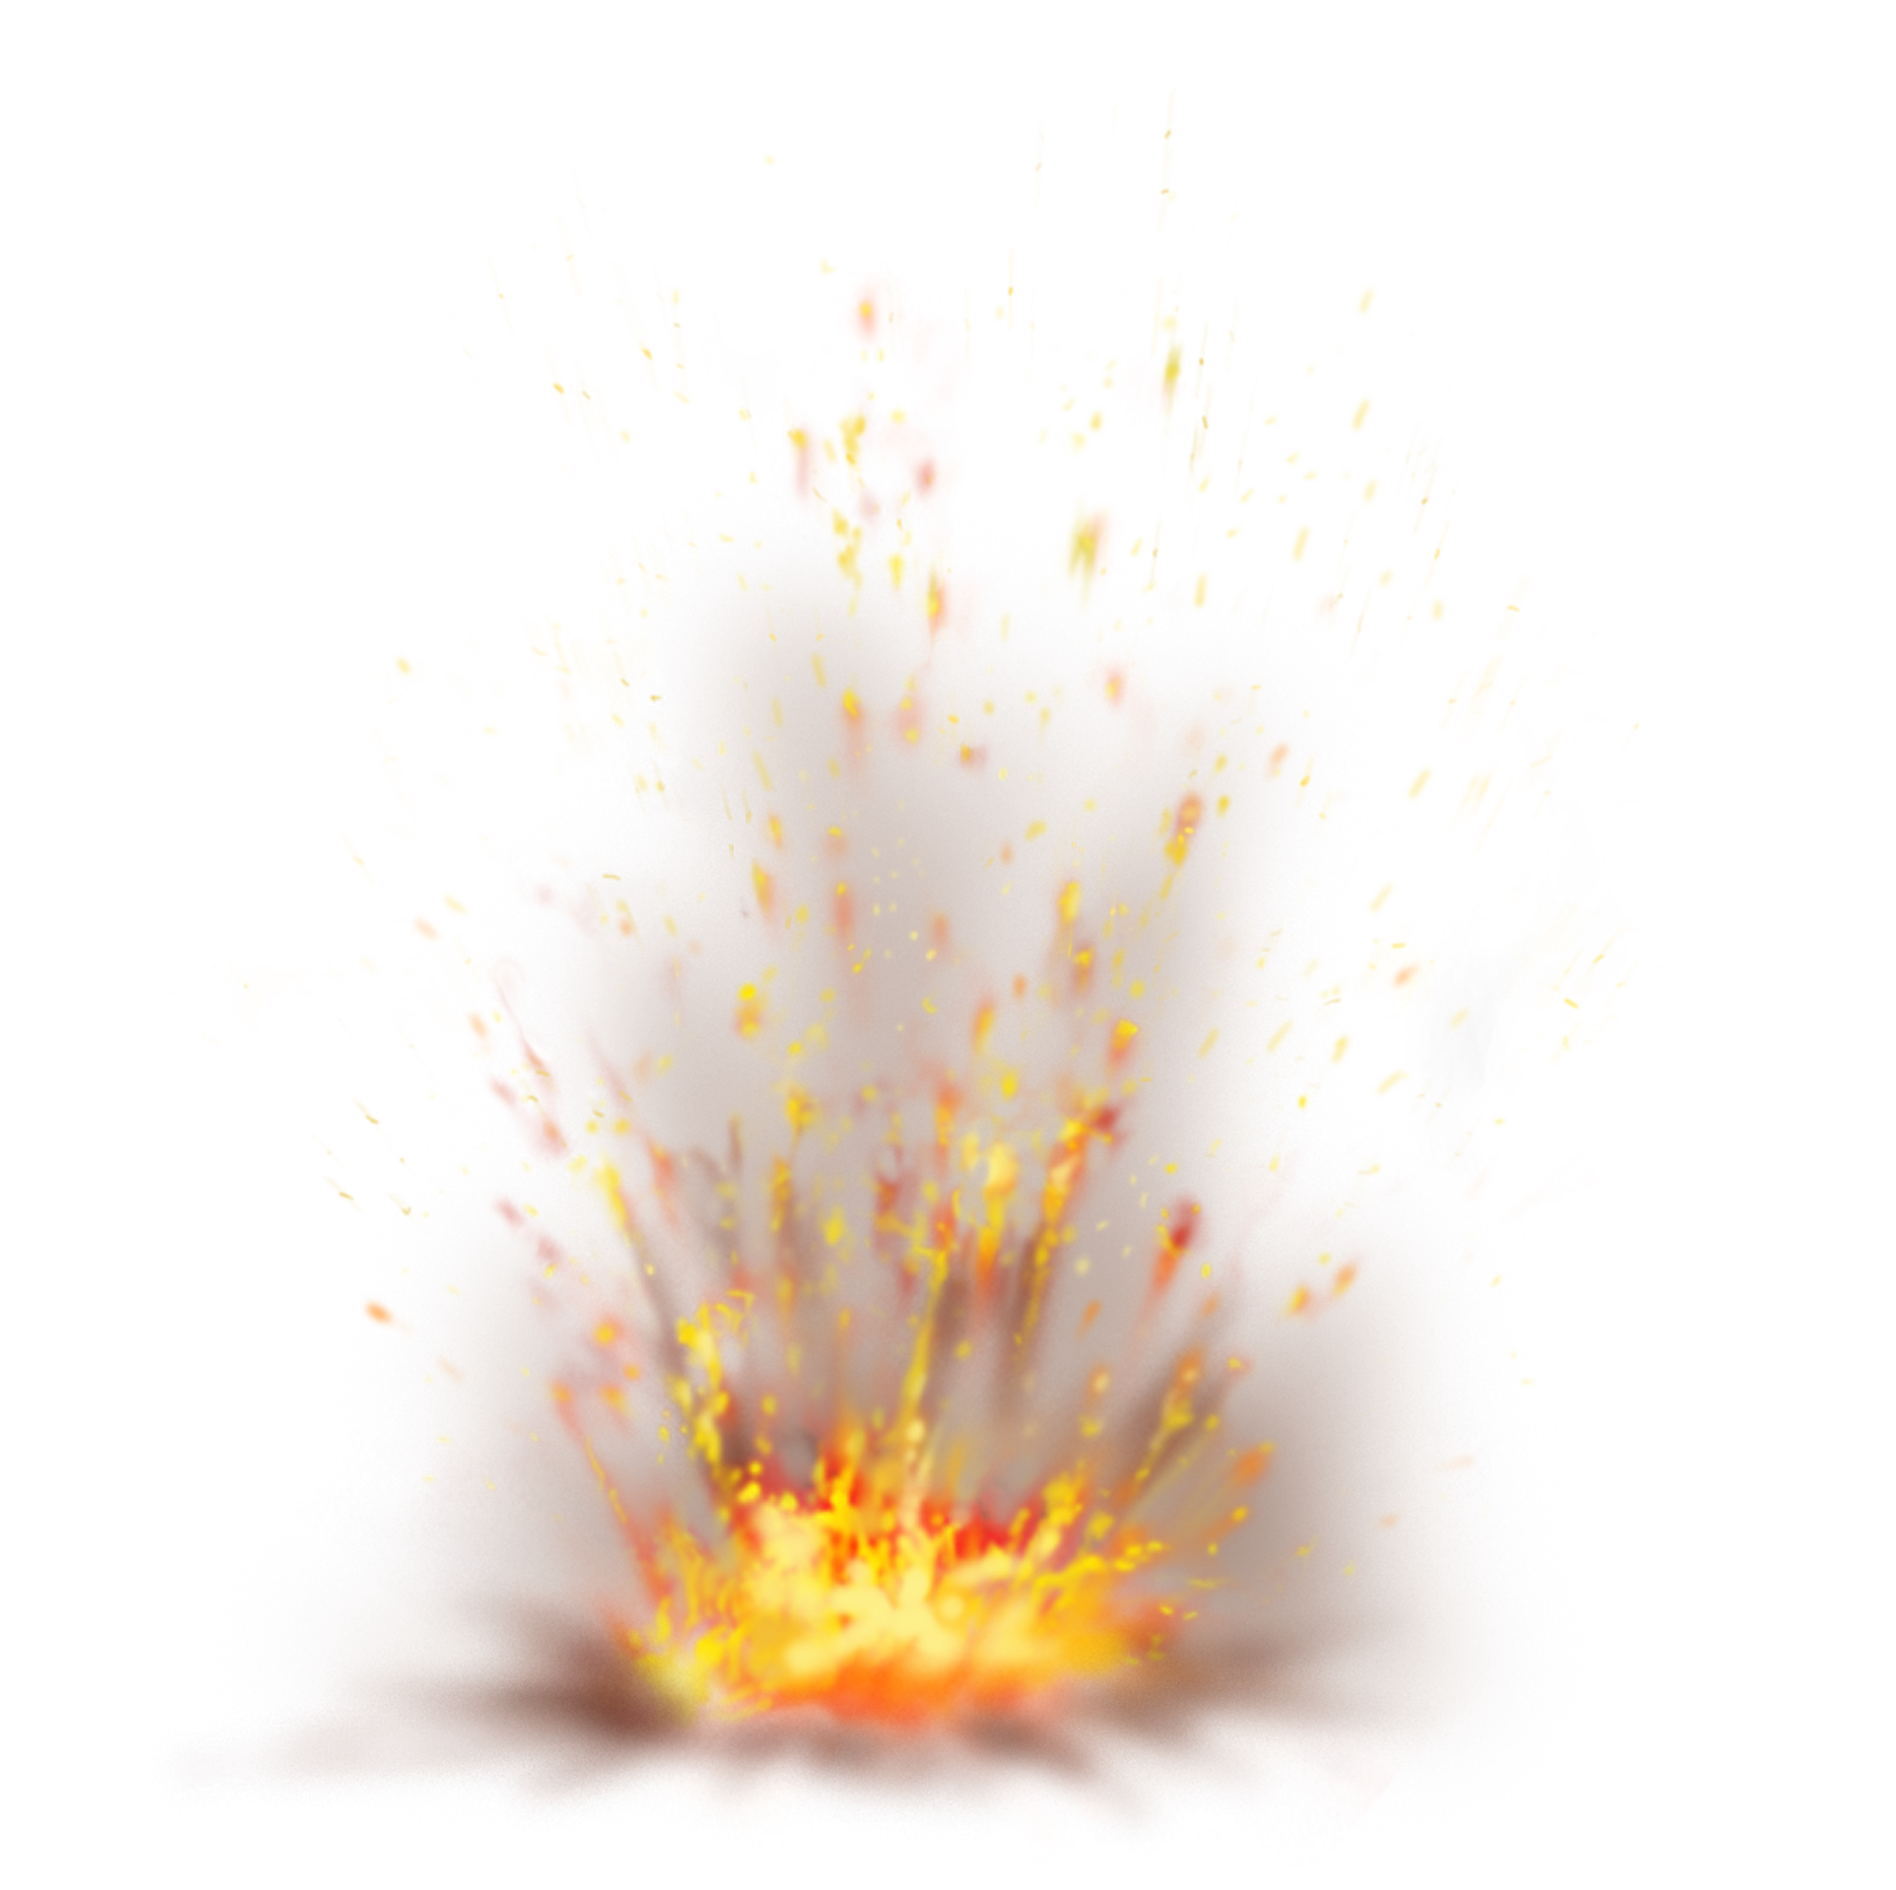 Fire Flame Sparkling Ground Explosion PNG Image